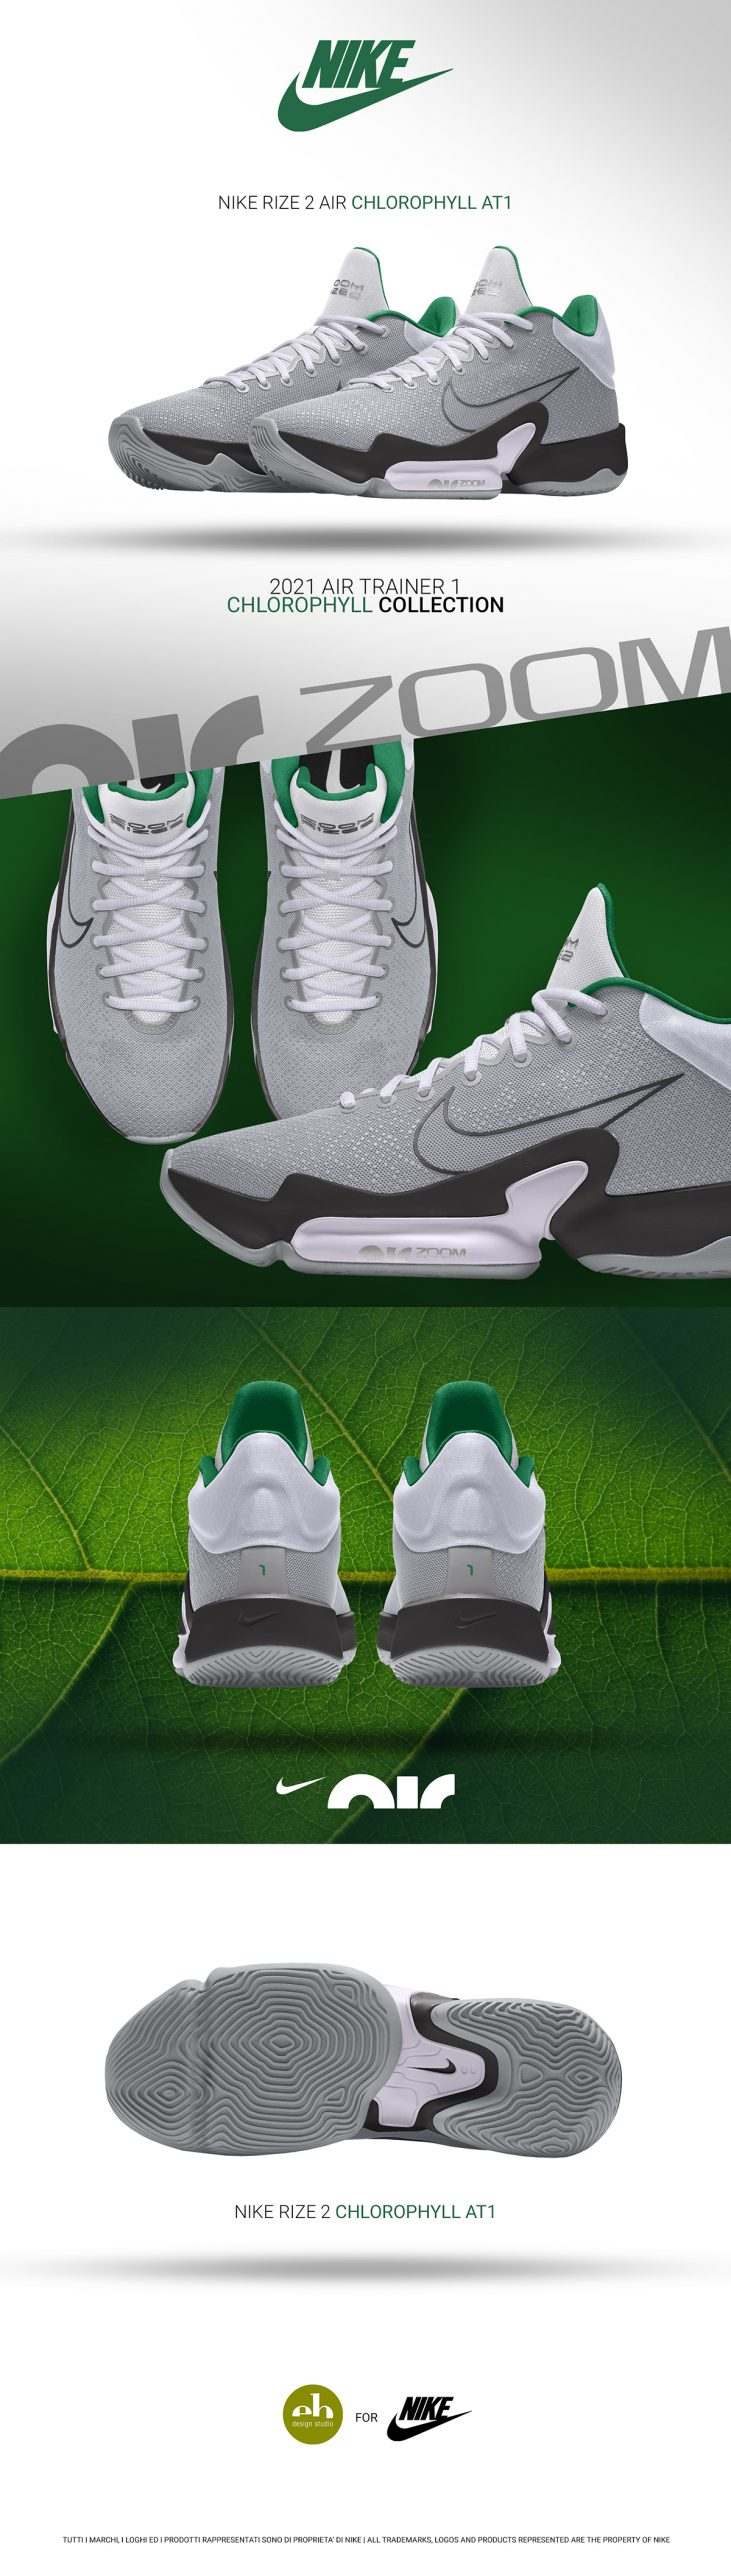 Nike Rize 2 Chlorophyll AT1